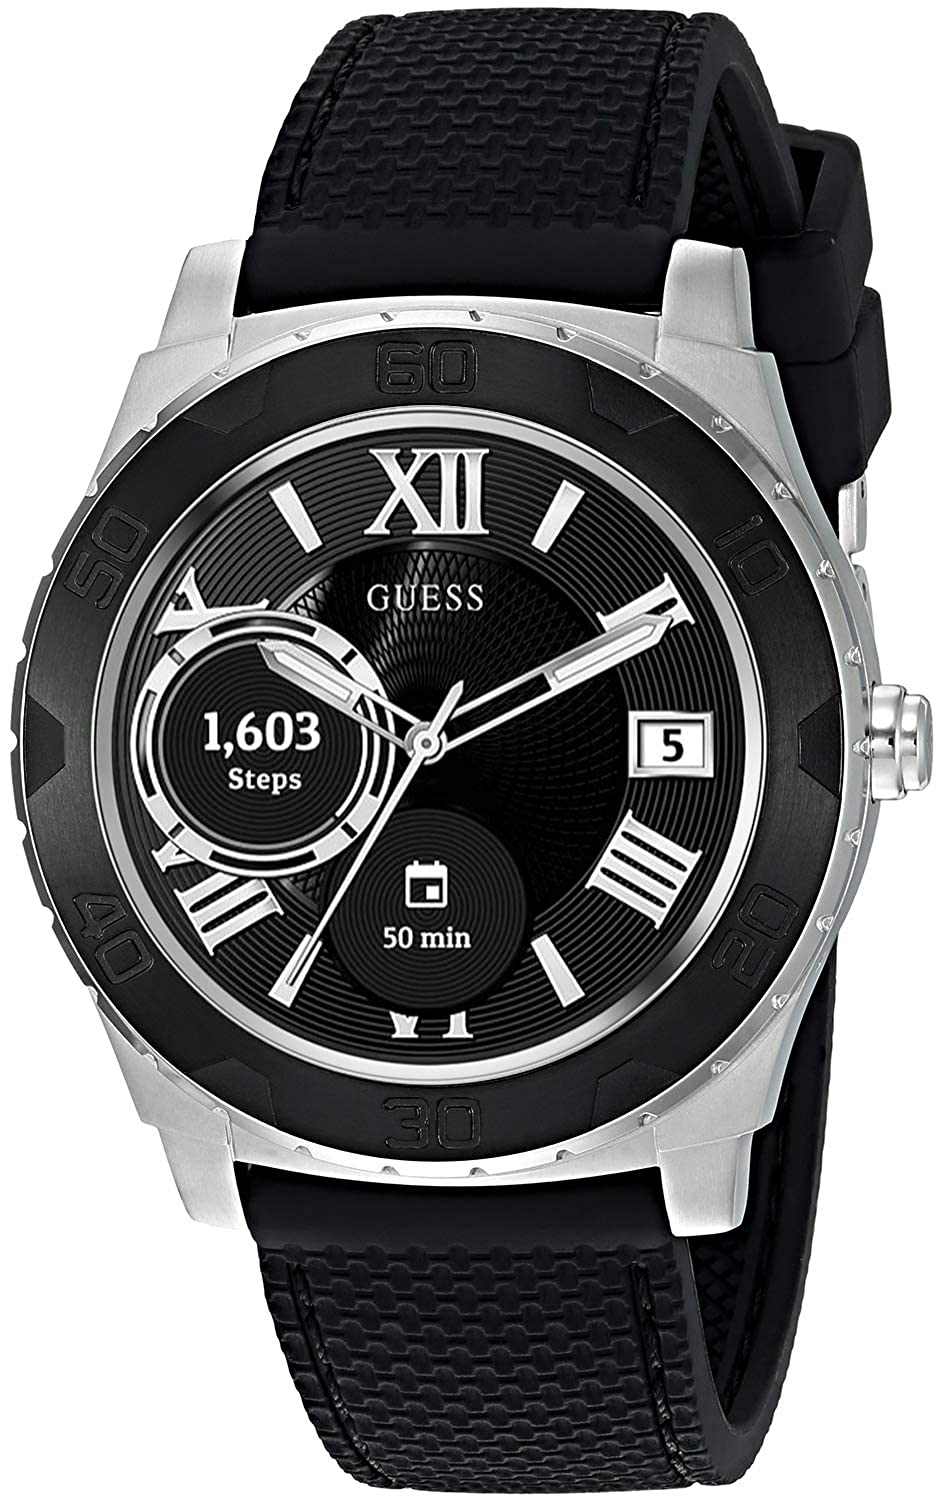 GUESS Mens Stainless Steel Android Wear Touch Screen Silicone Smart Watch